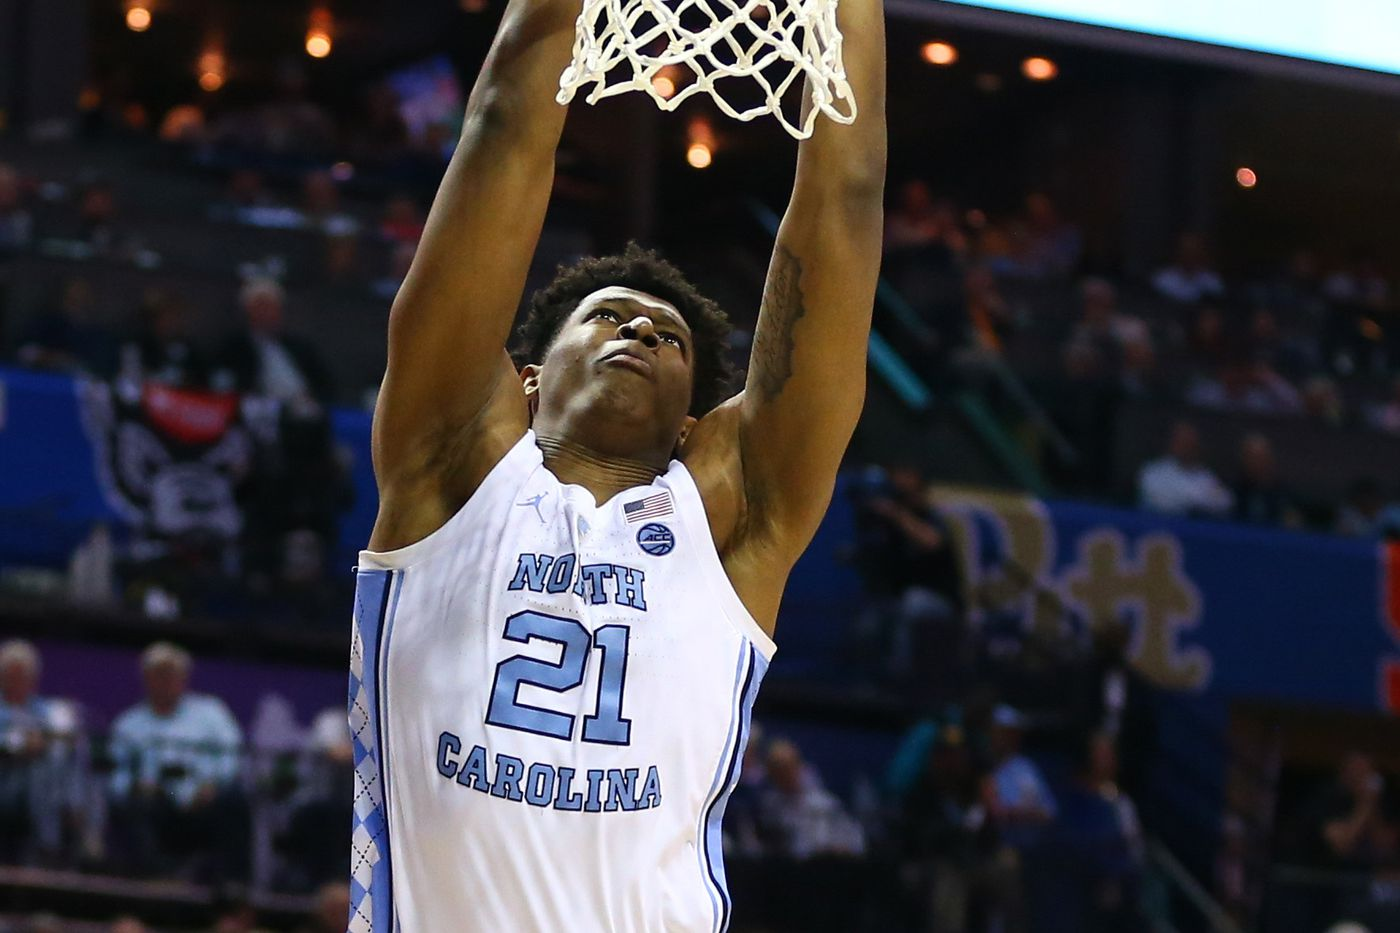 UNC Basketball Summer Preview: Sterling Manley